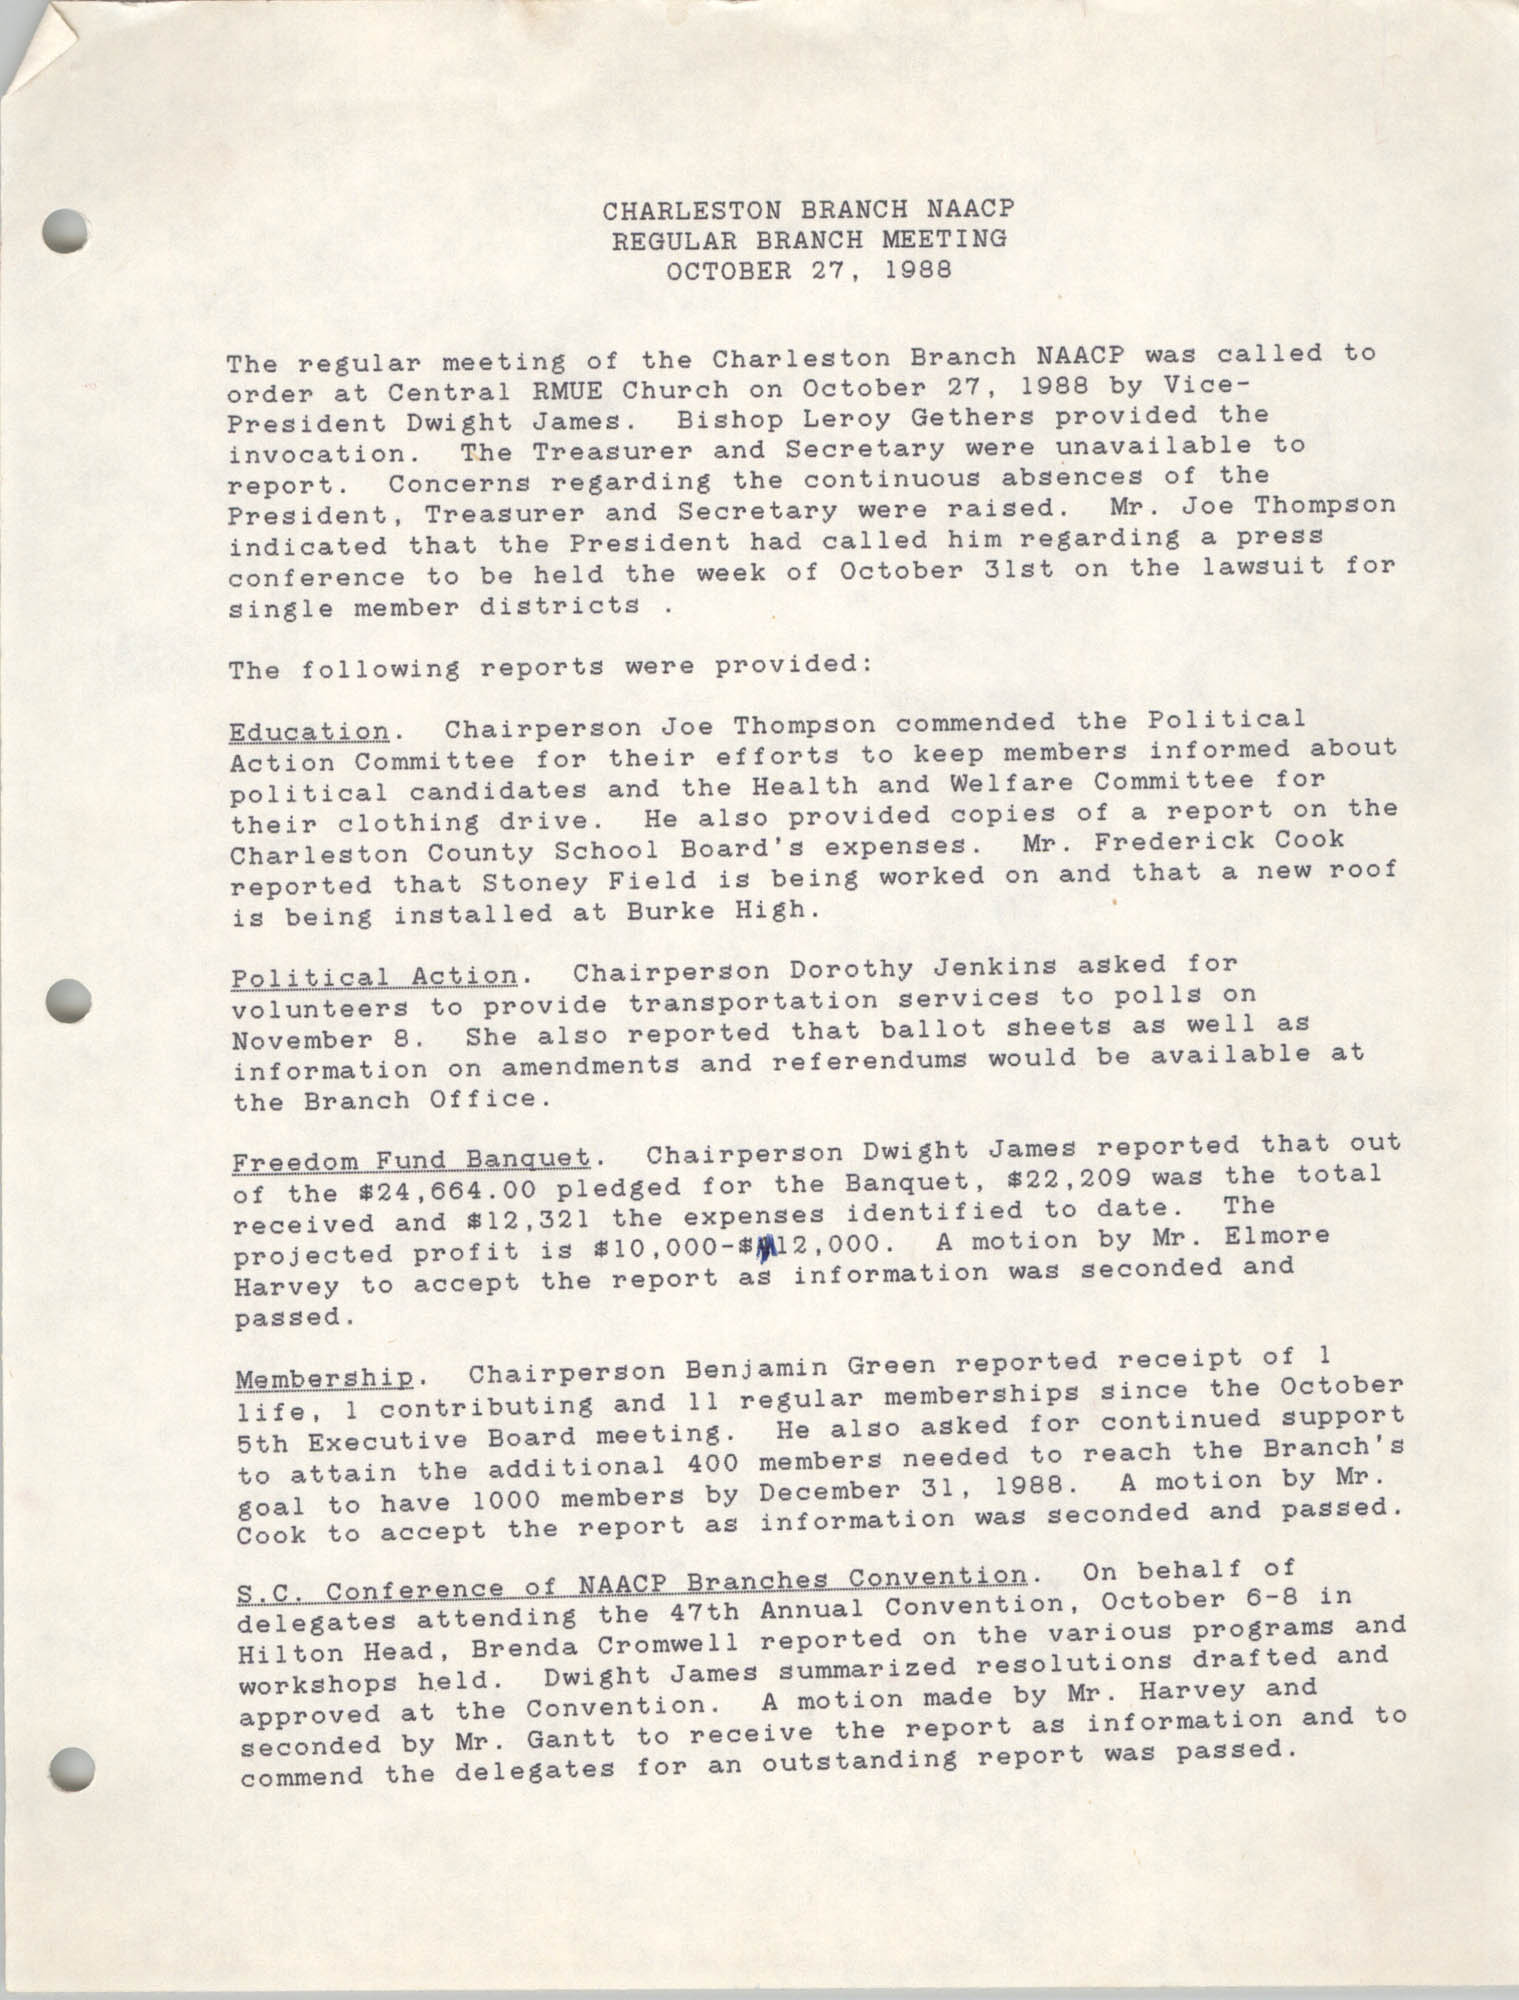 Minutes, Charleston Branch of the NAACP, Regular Branch Meeting, October 27, 1988, Page 1